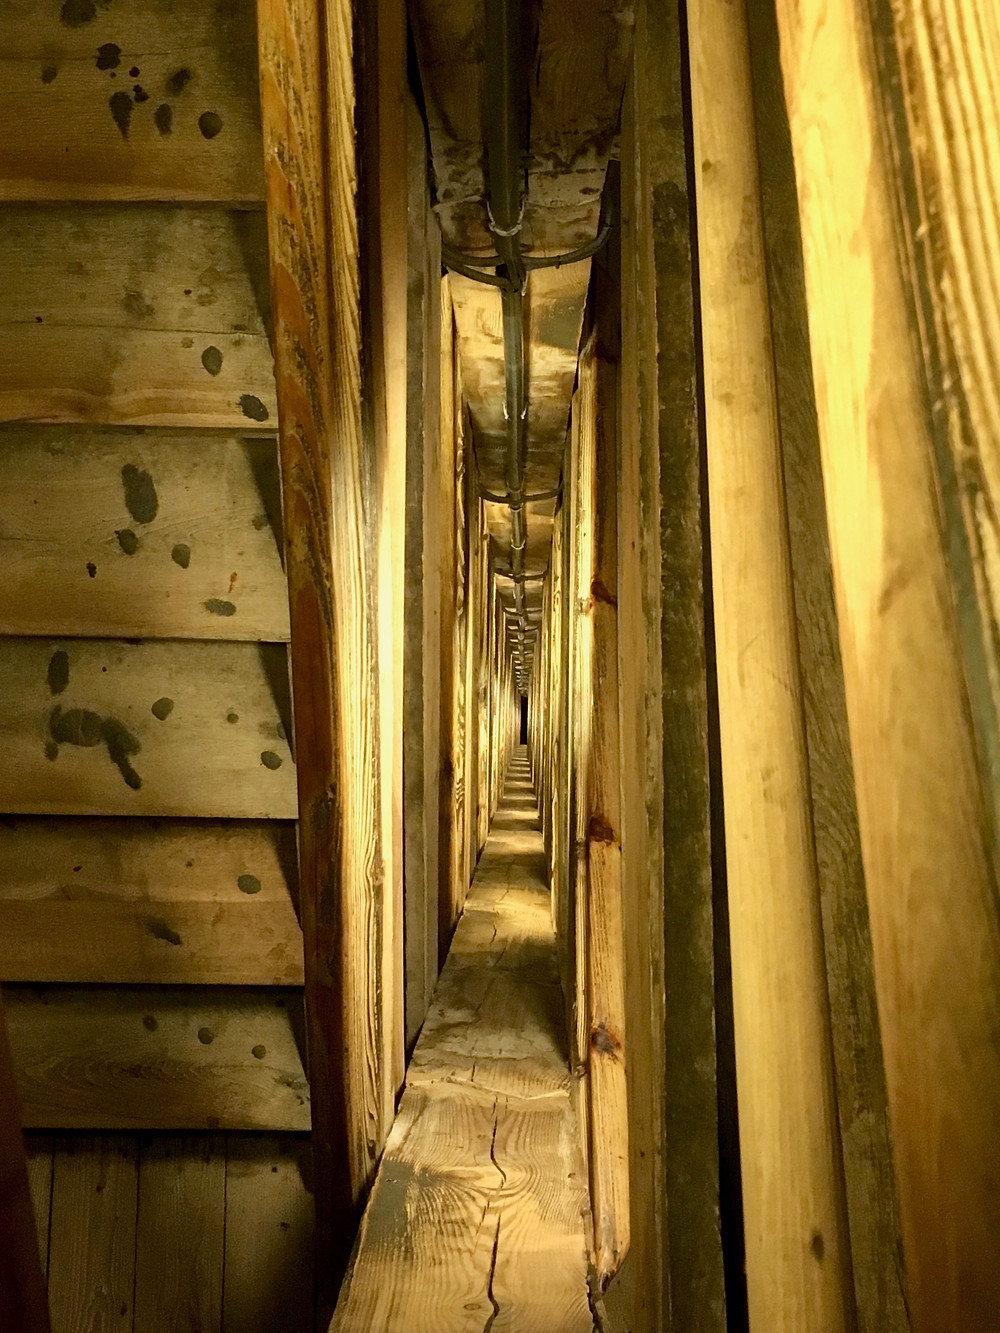 The spiral stairs leading into the Wieliczka Salt Mine